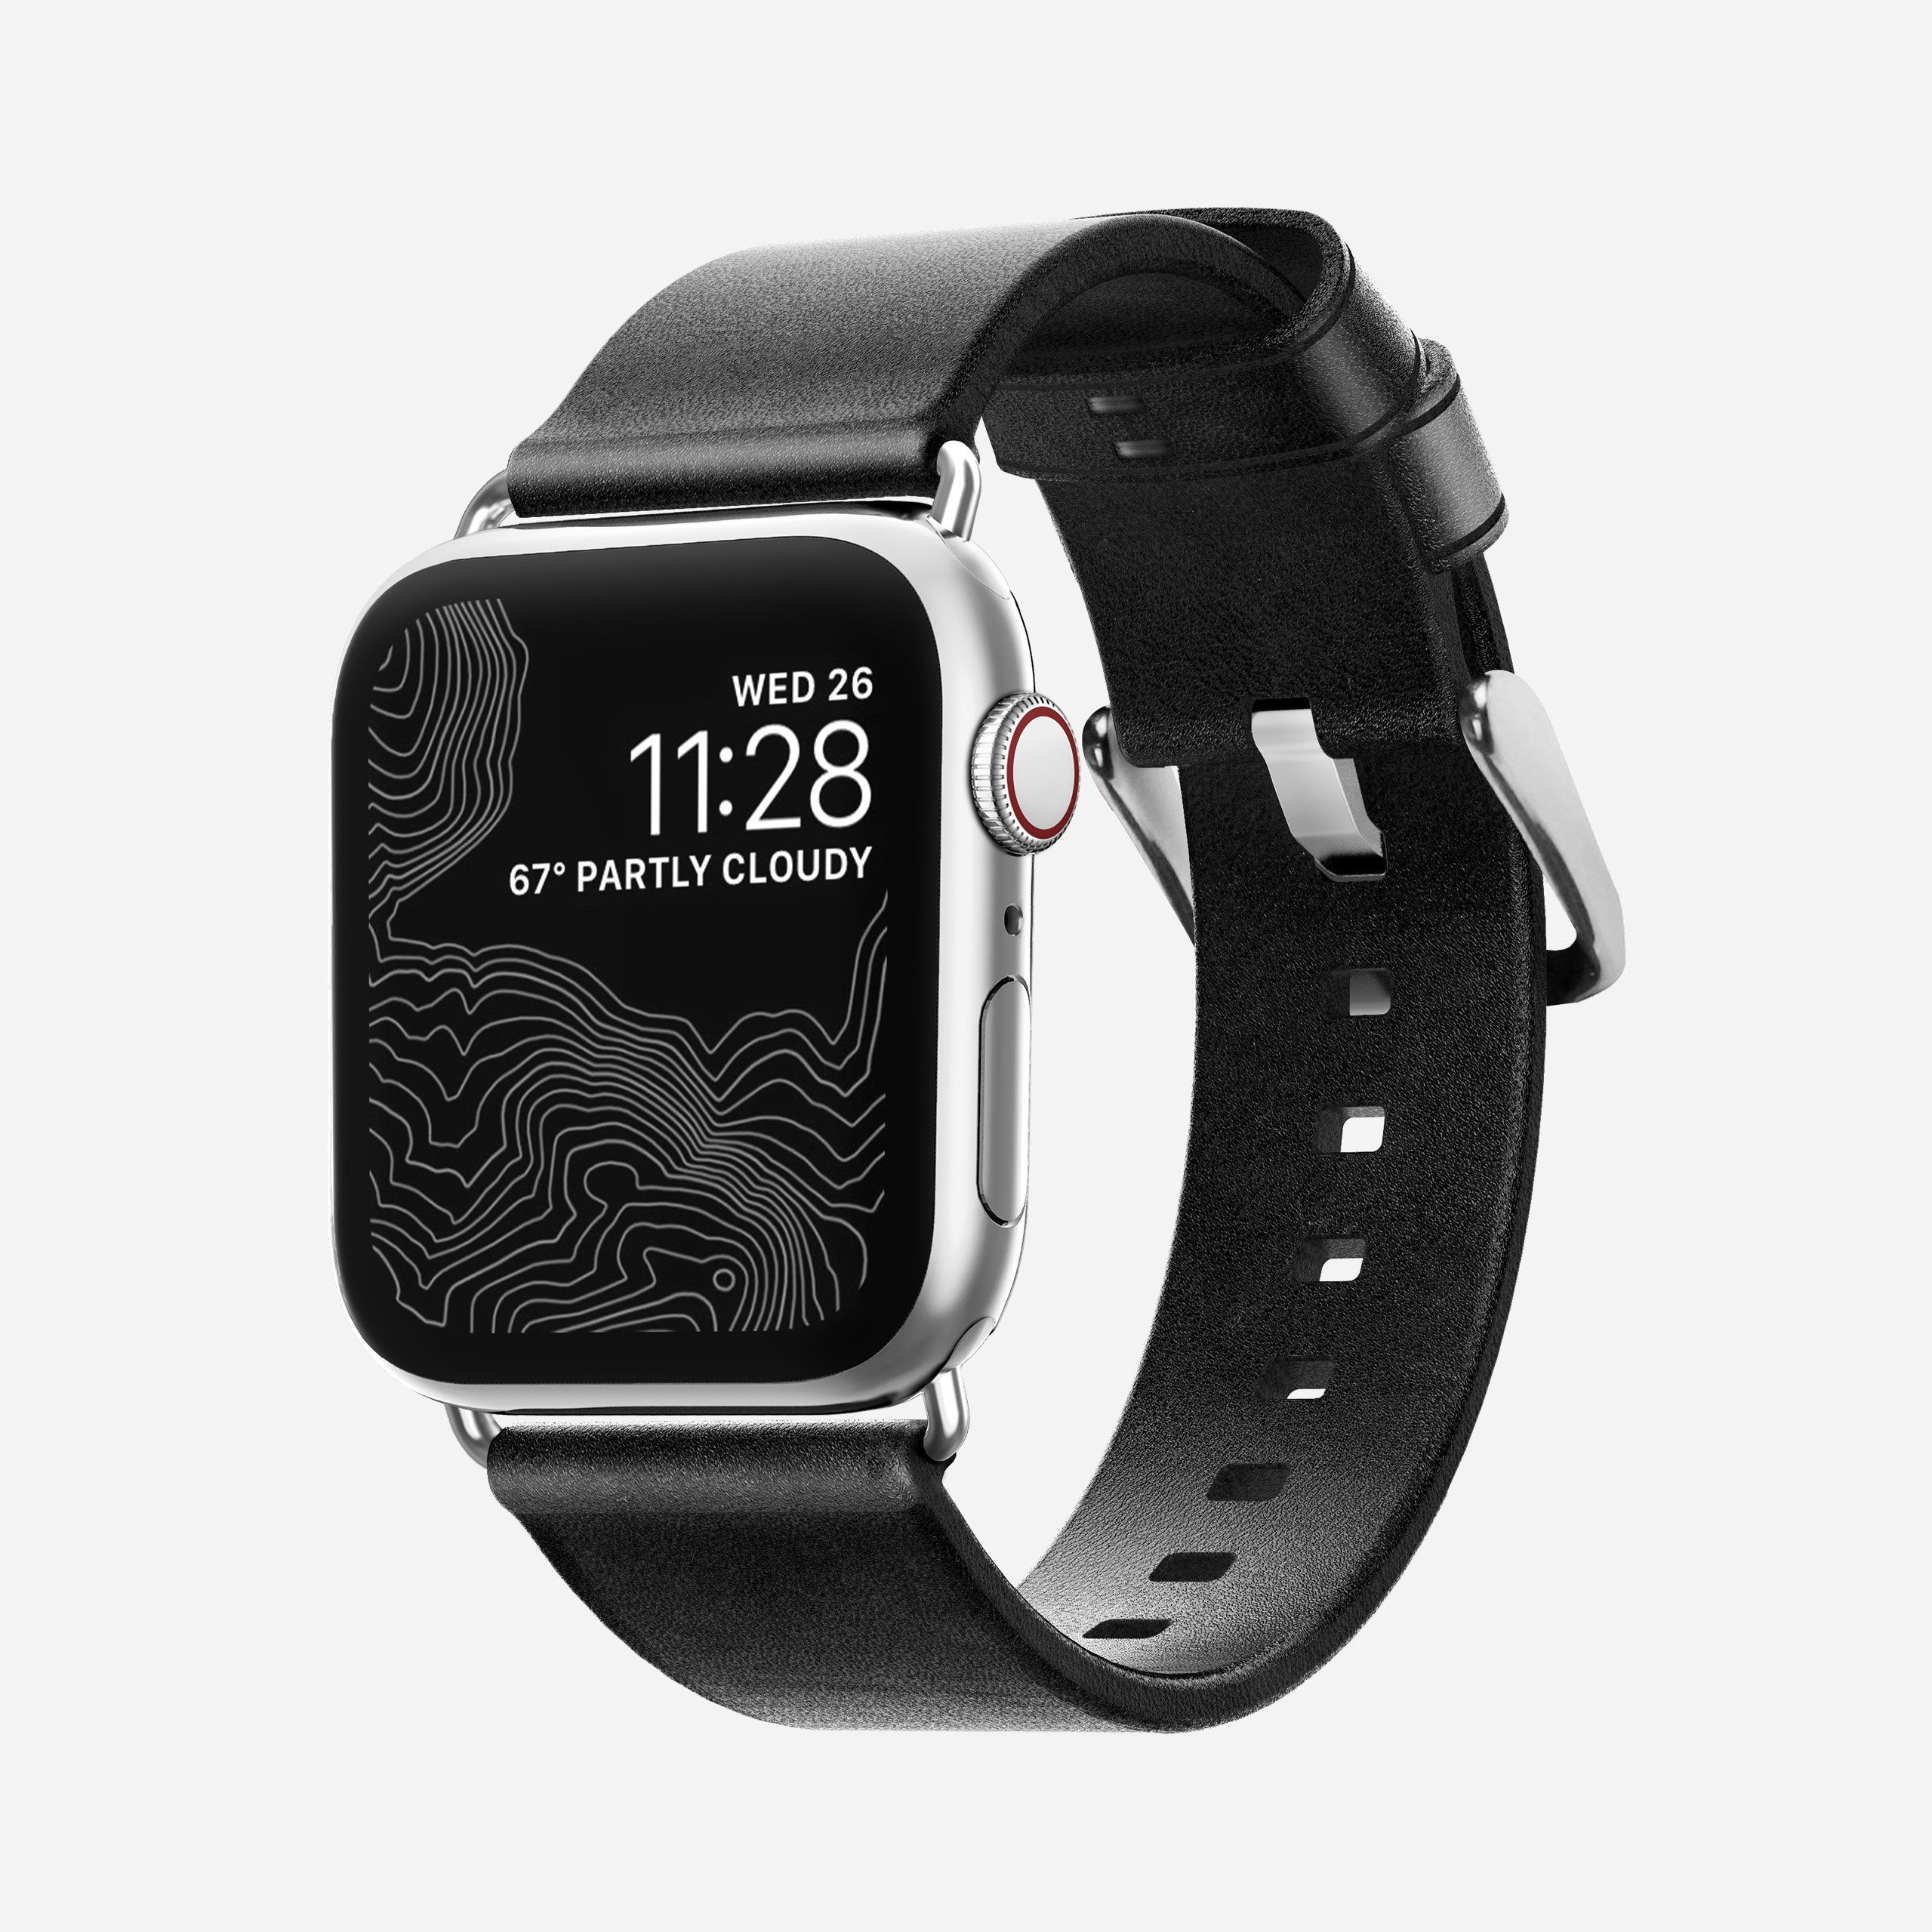 Apple Watch Black Leather Band, Slim + Silver Hardware